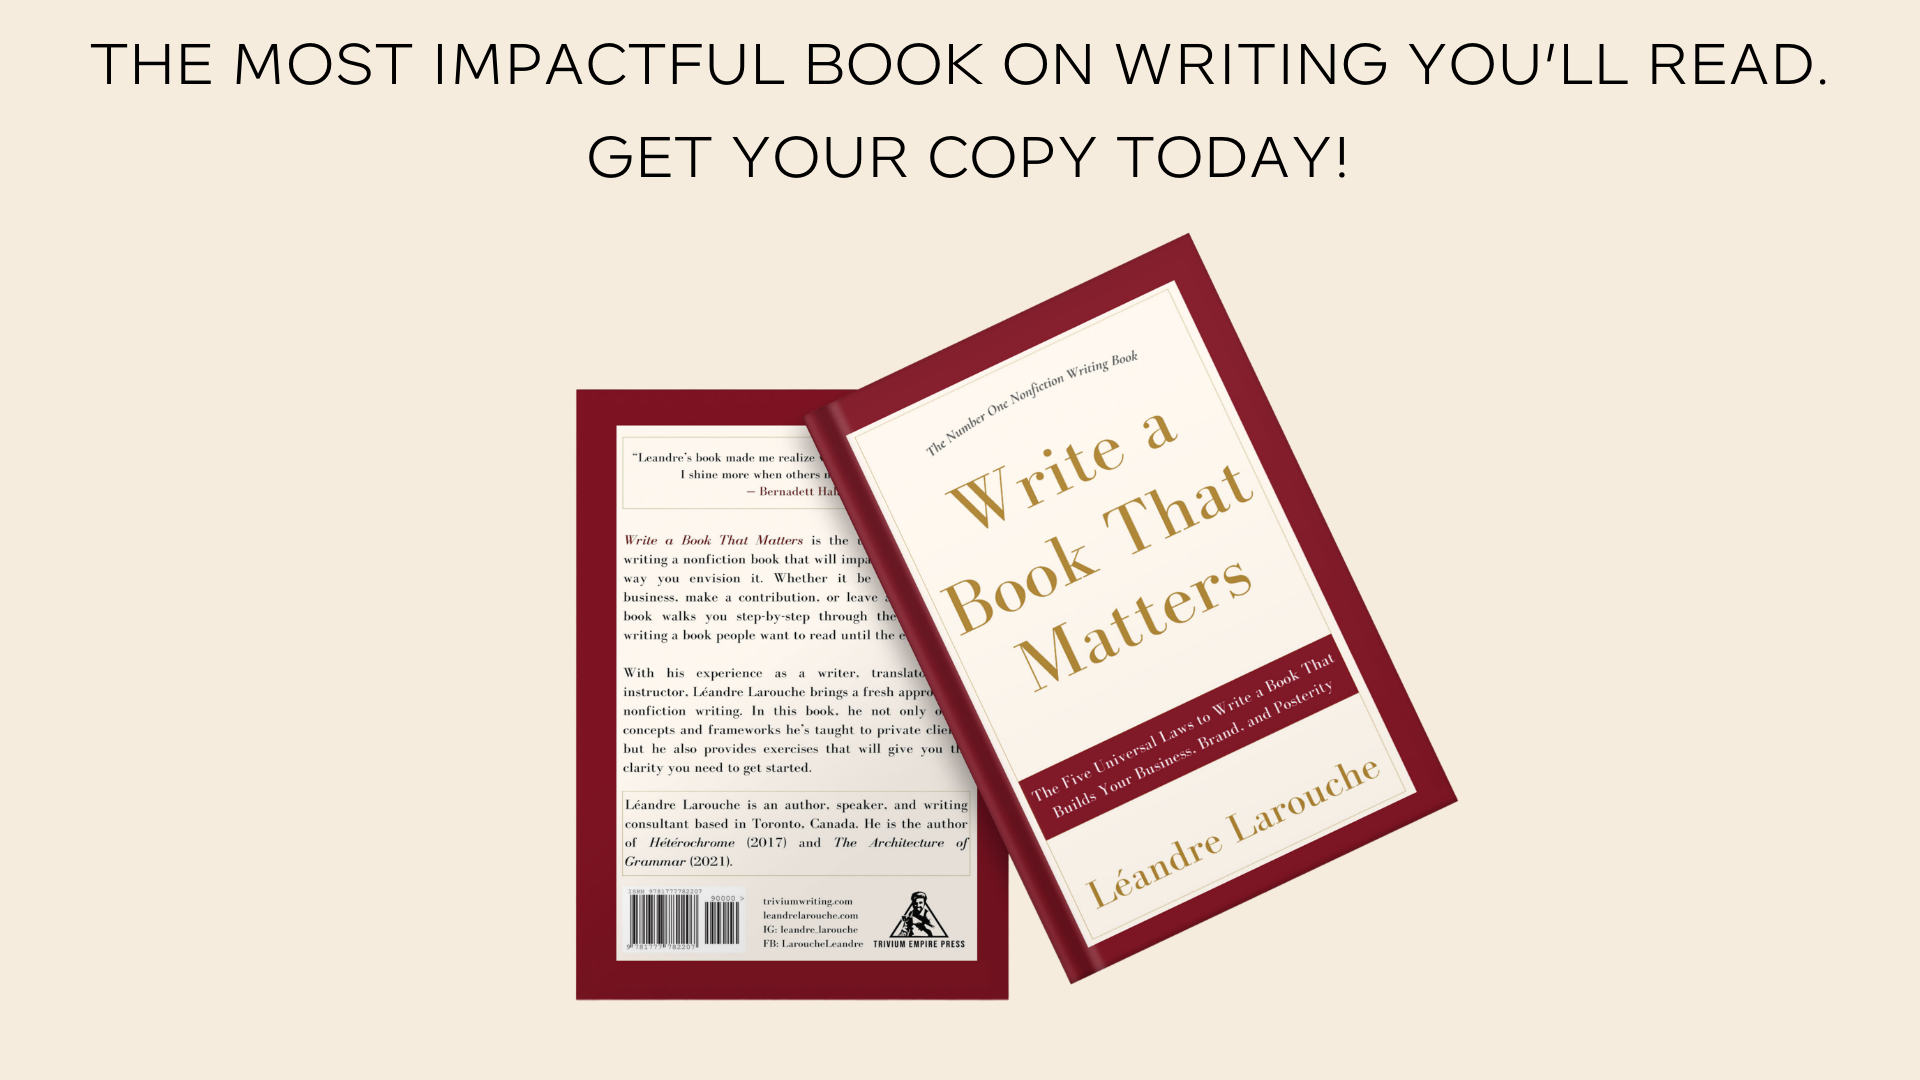 Get Your Copy of Write a Book That Matters